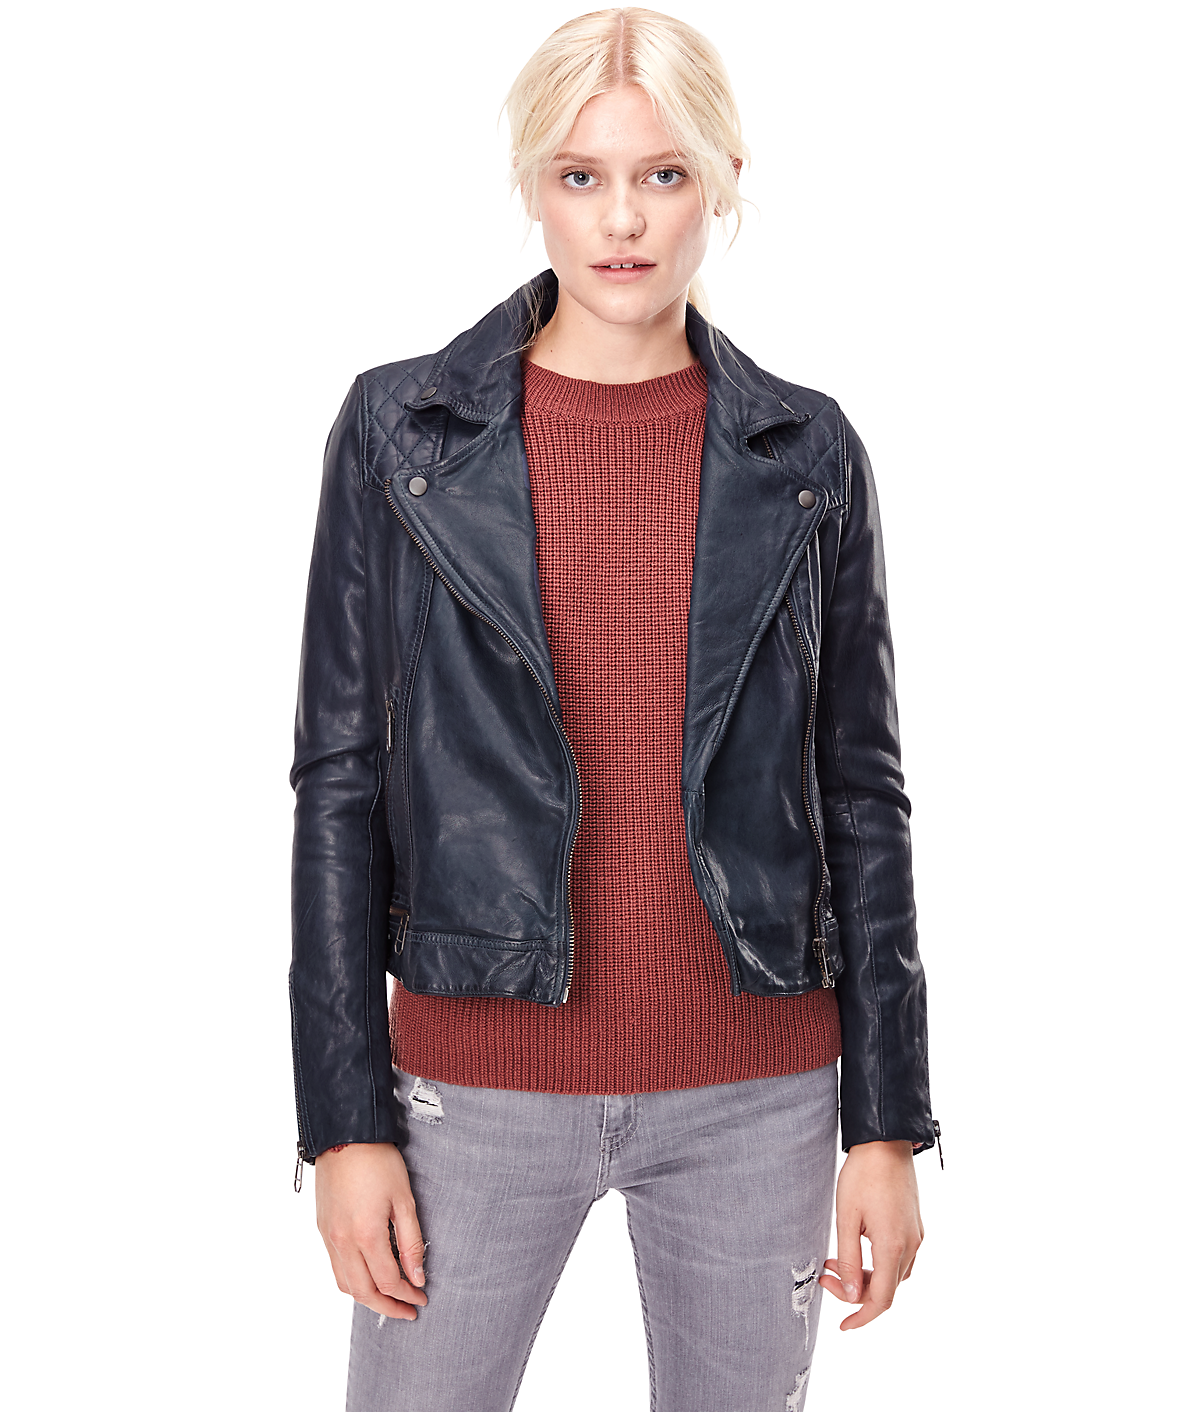 Cropped leather jacket H2167000 from liebeskind